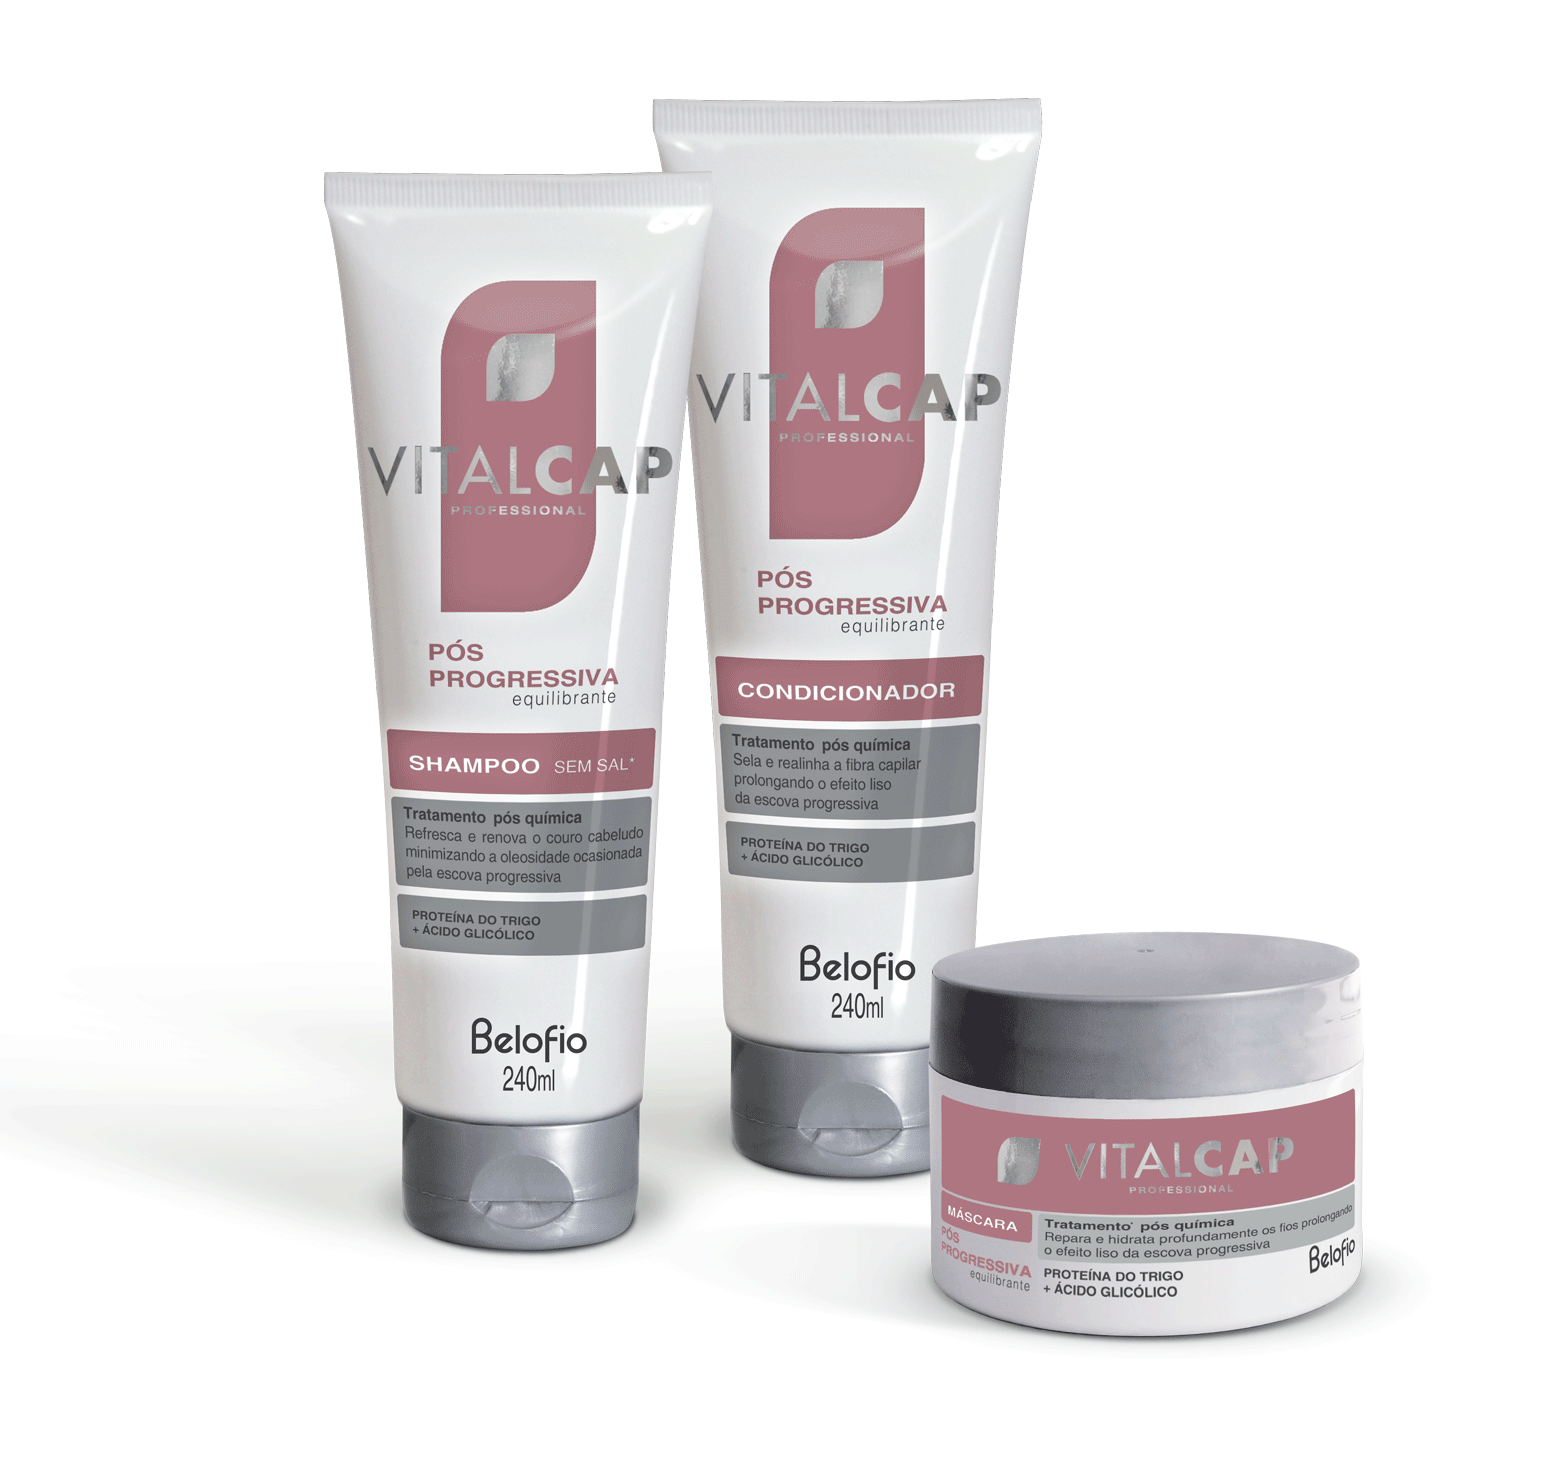 Kit Pós Progressiva VITALCAP 240ml e Máscara 250g